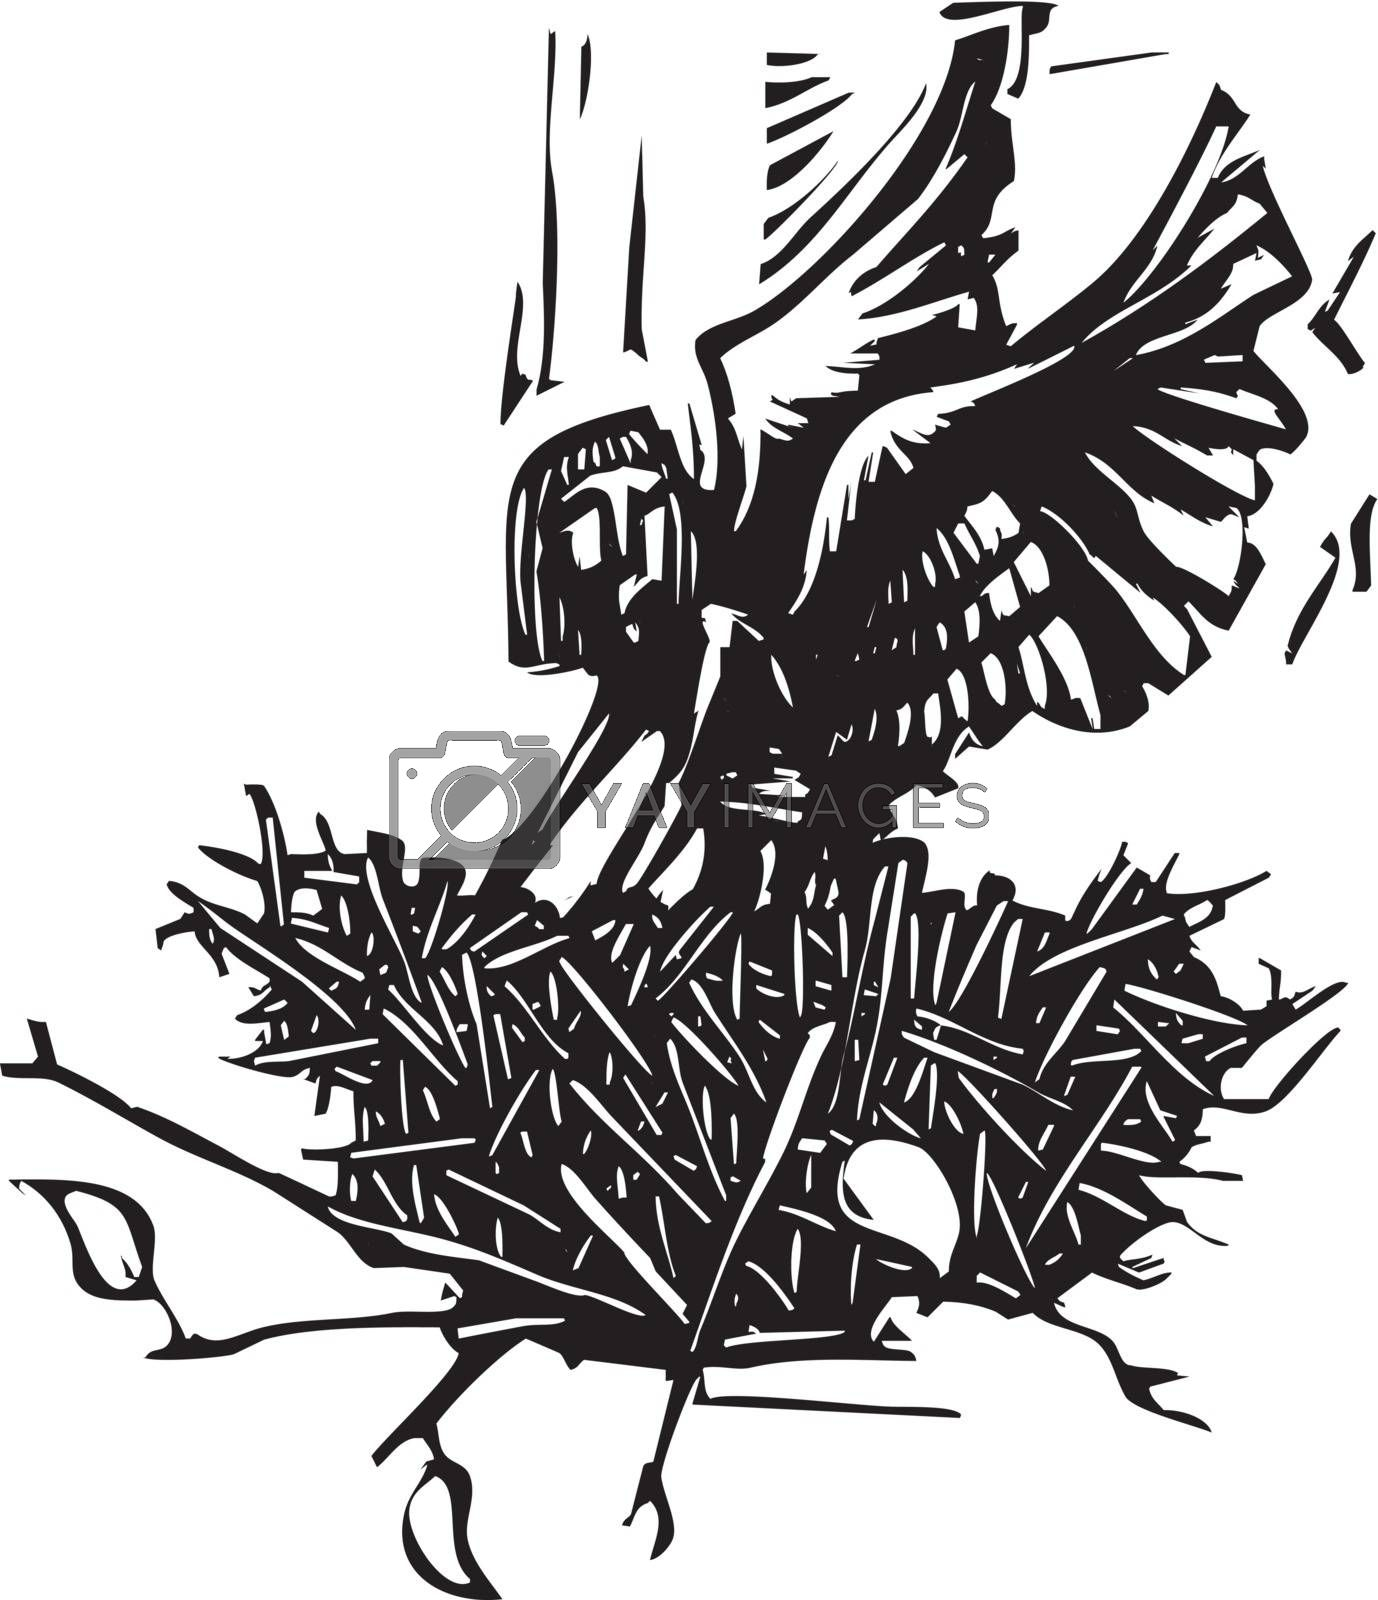 Woodcut style image of an winged angel waking up in a bird's nest.